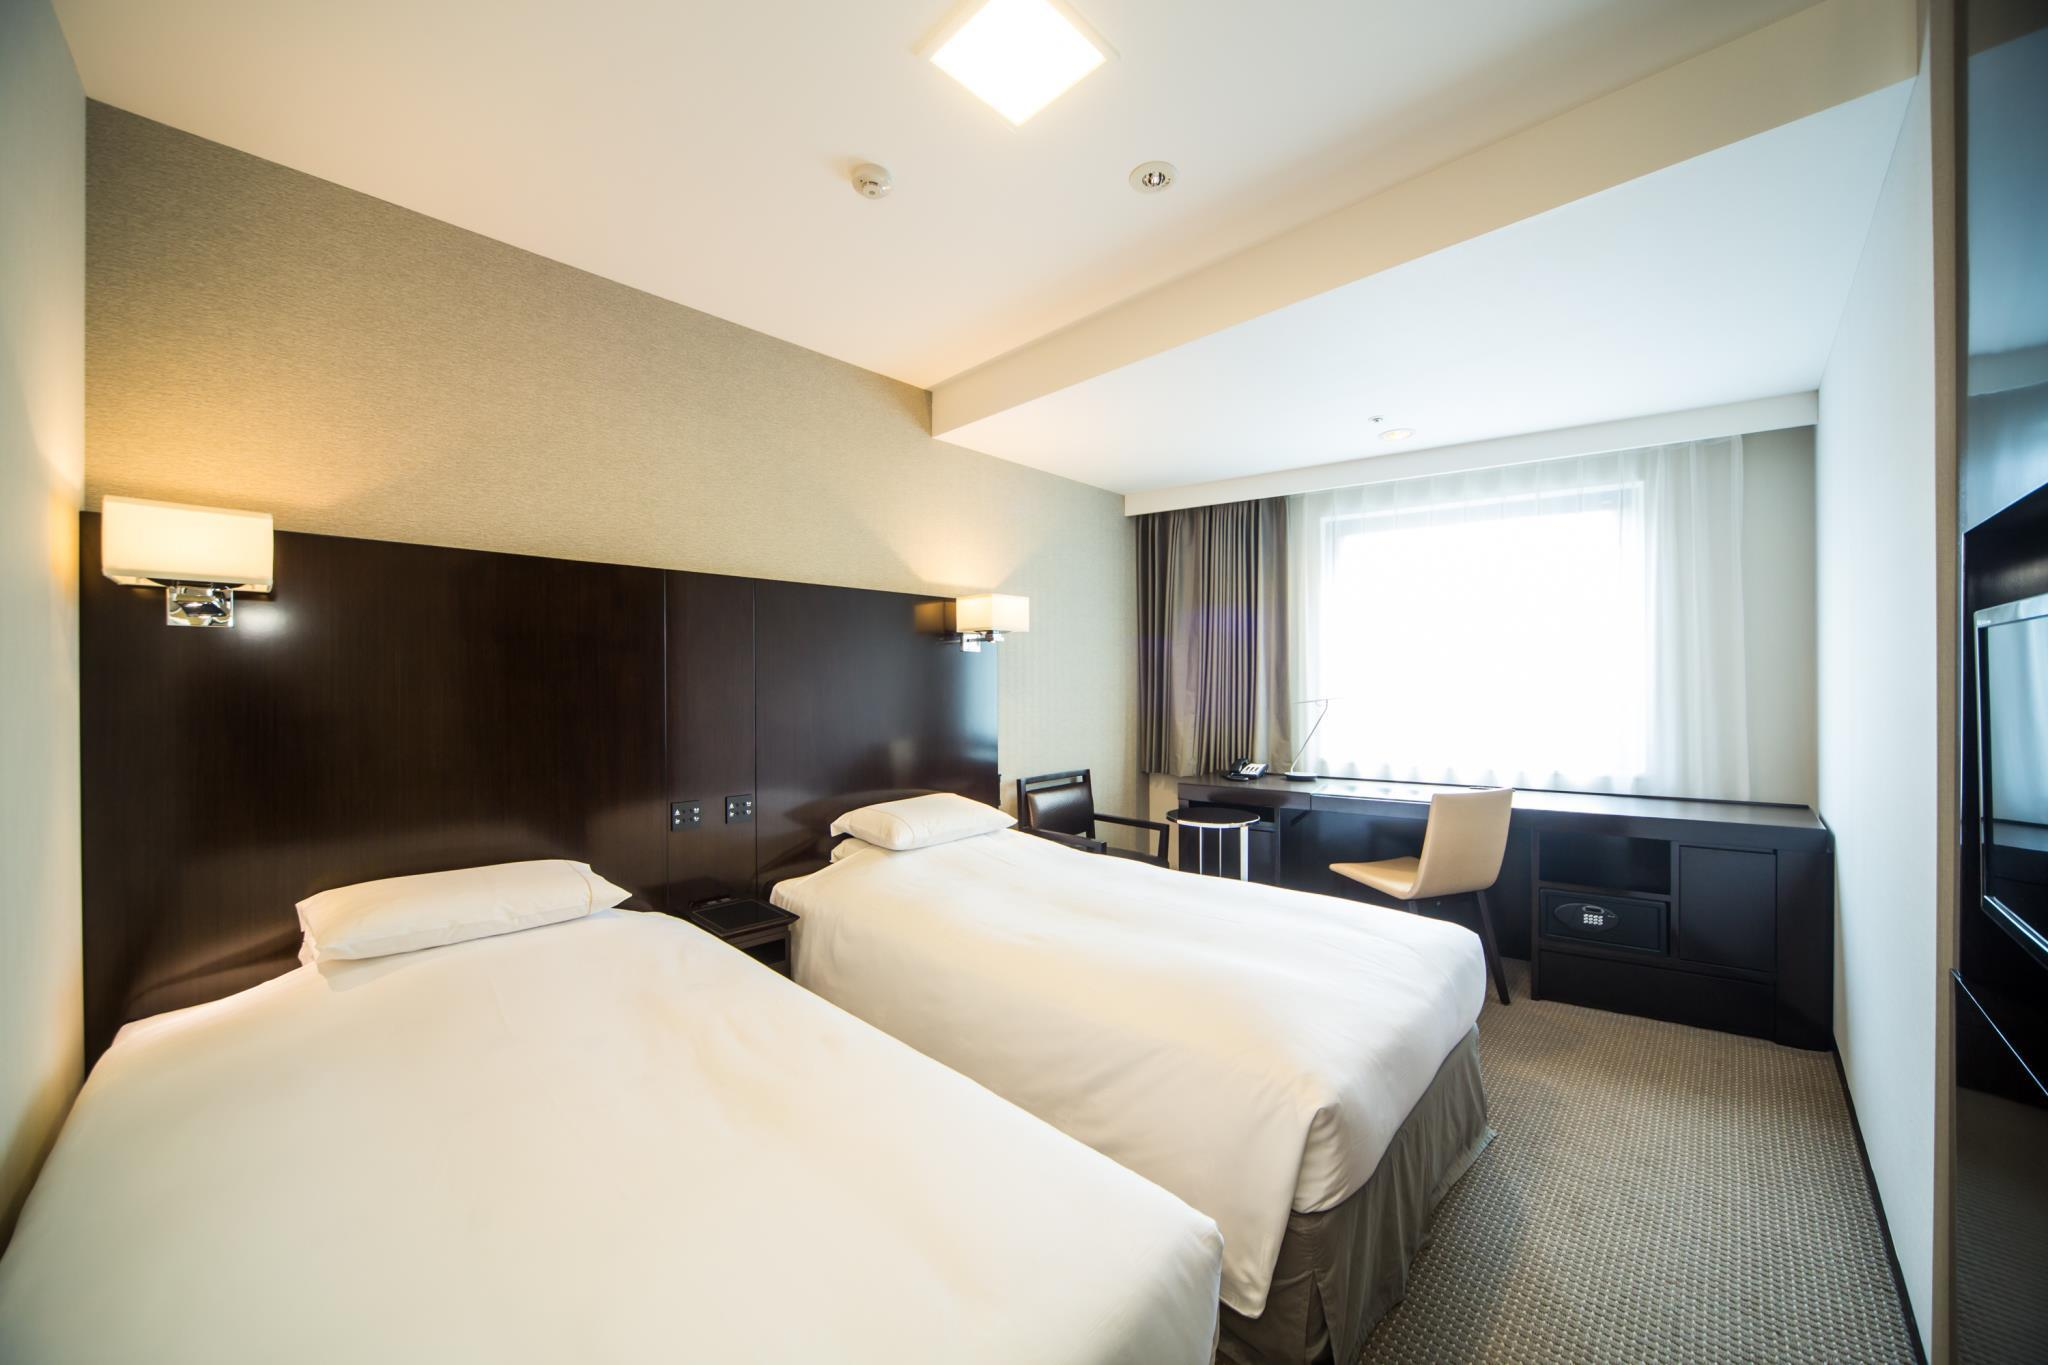 Kahden hengen-huone ‒ 1 hengelle, savuton (Twin Room for 1 Person - Non-Smoking)